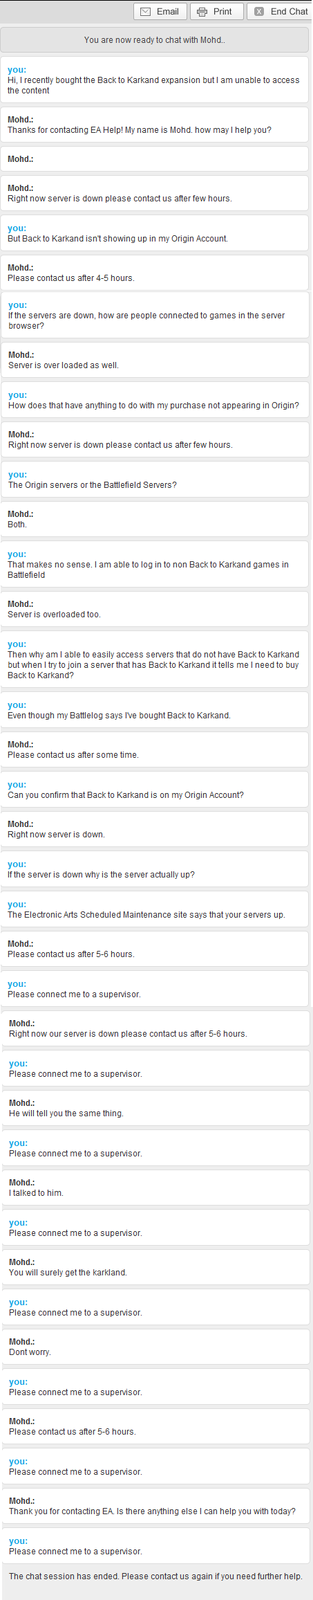 Customer Service chat - Battlefield edtion